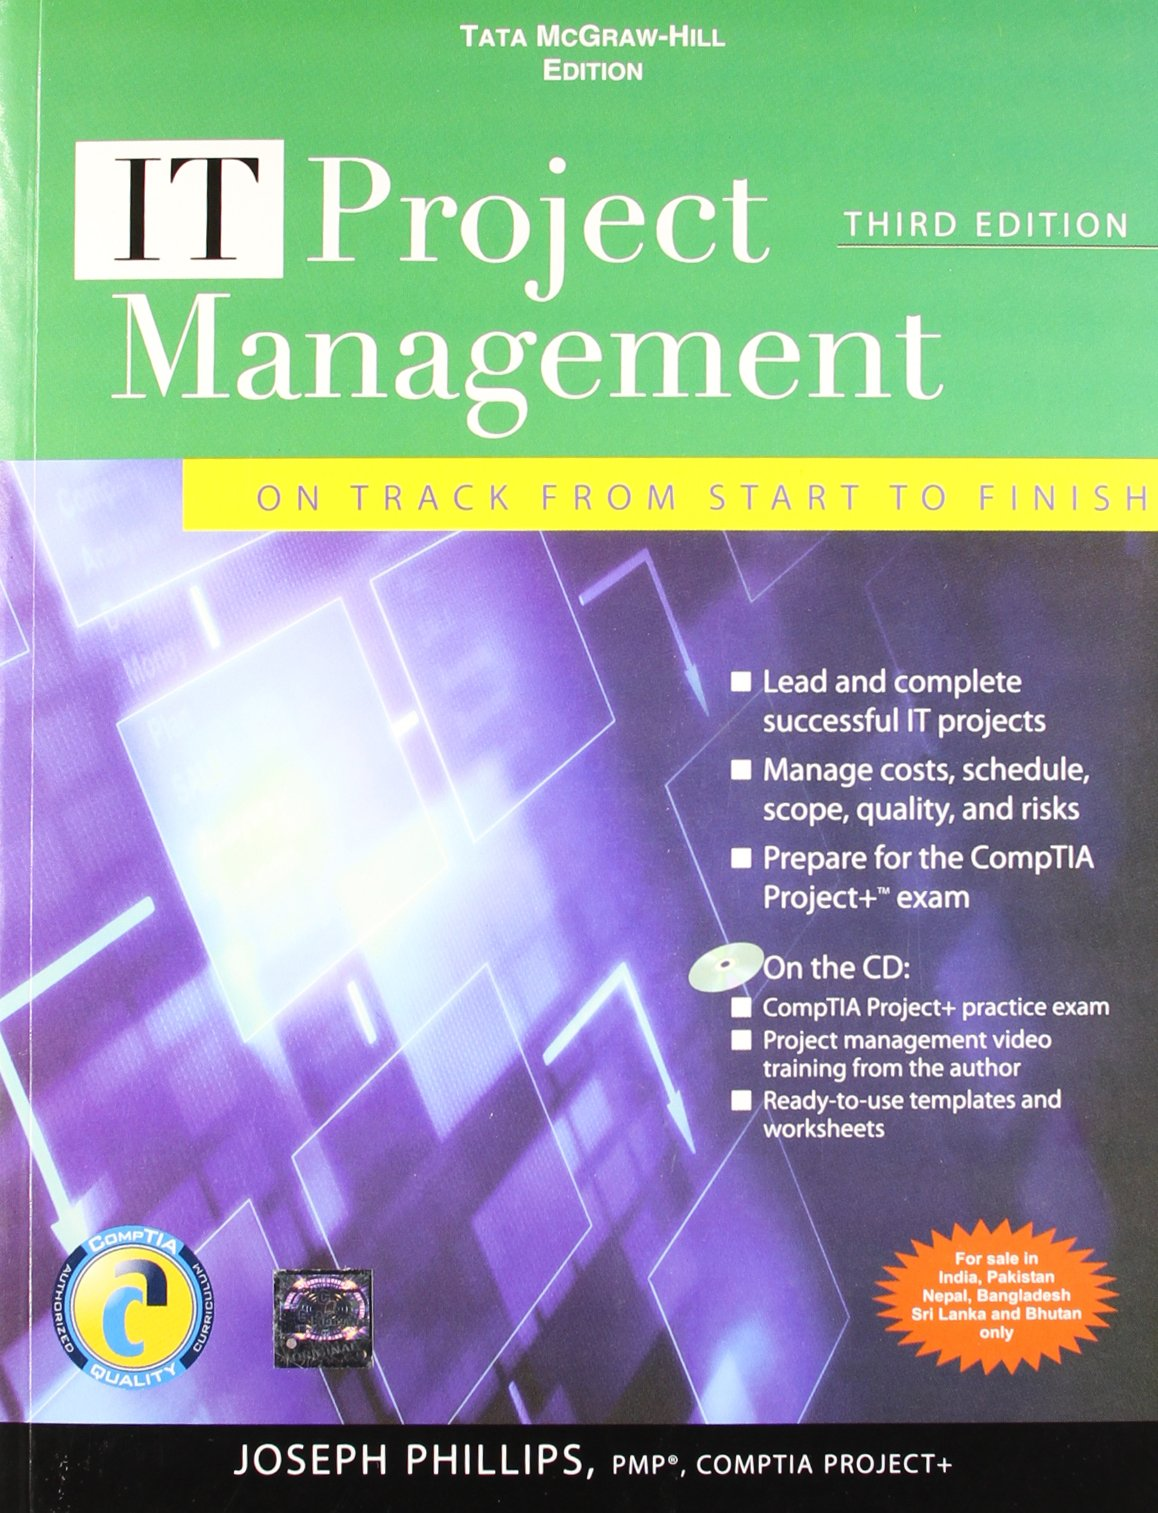 It project management on track from start to finish third it project management on track from start to finish third edition joseph phillips 9780071067270 amazon books xflitez Image collections